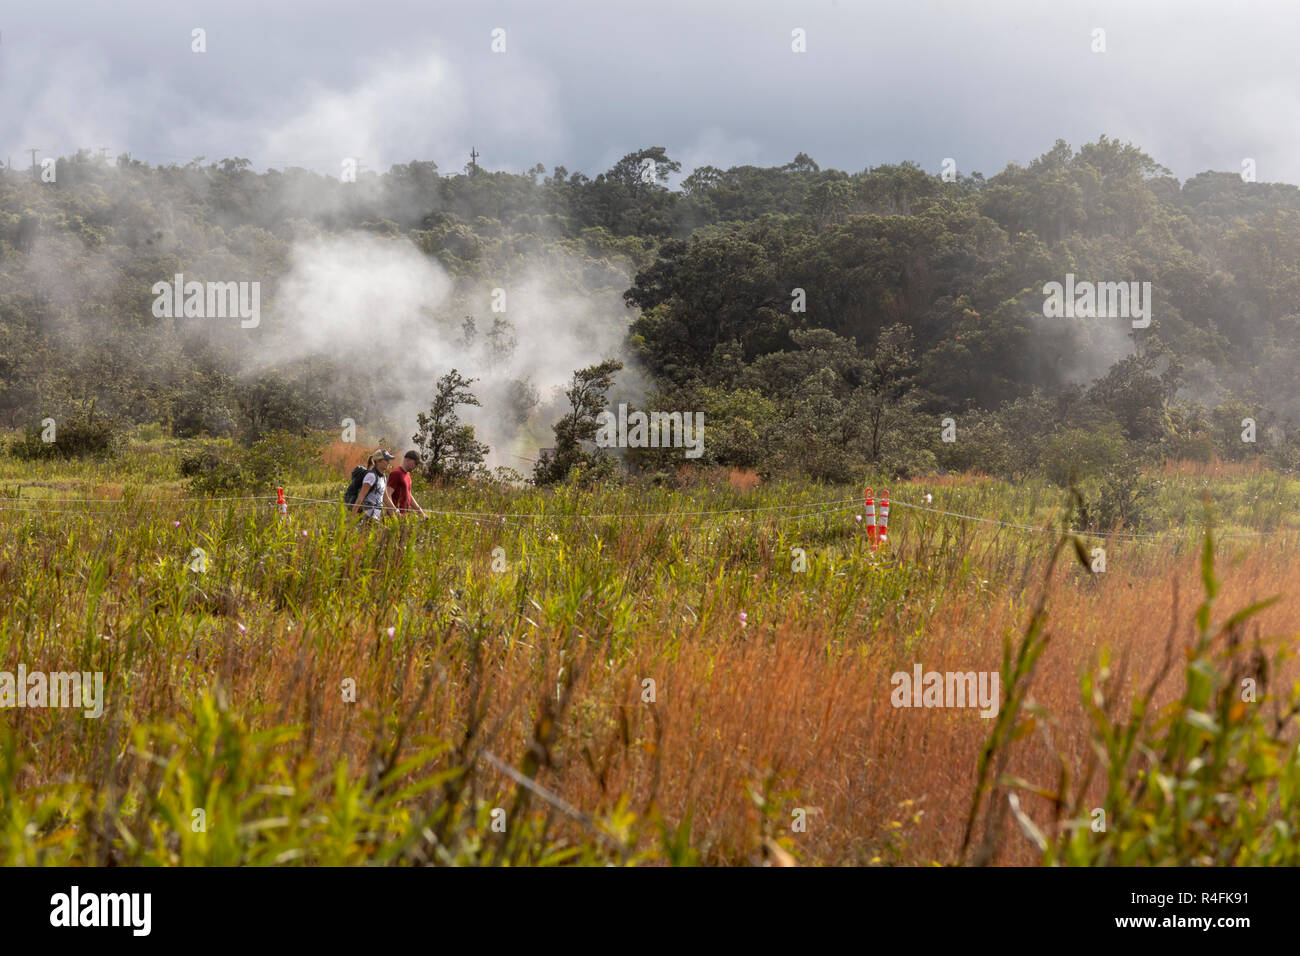 Hawaii Volcanoes National Park, Hawaii - Hikers near steam vents from the Kilauea volcano. - Stock Image